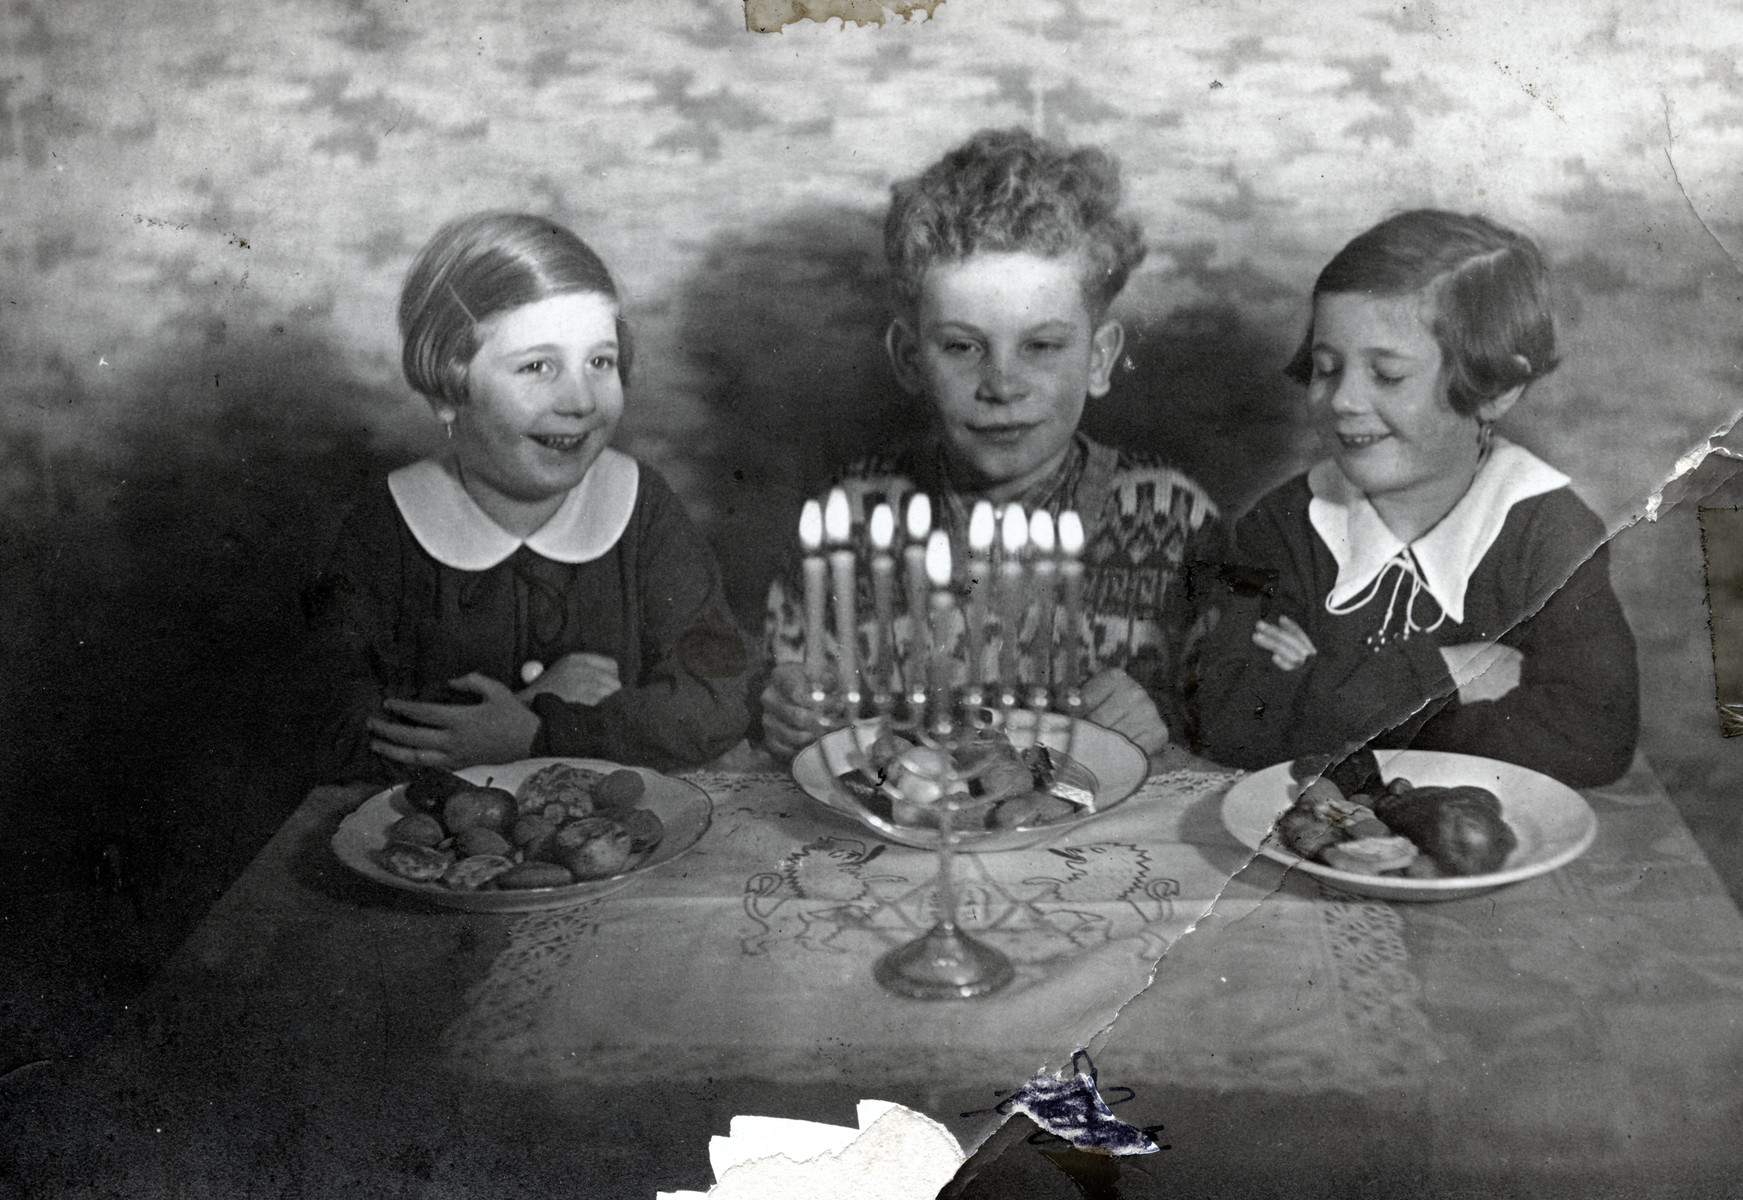 Raifeld/Welner siblings celebrate Hanukkah.   Pictured from left to right are Ruth Anders, Theo Raifeld and Regina Anders